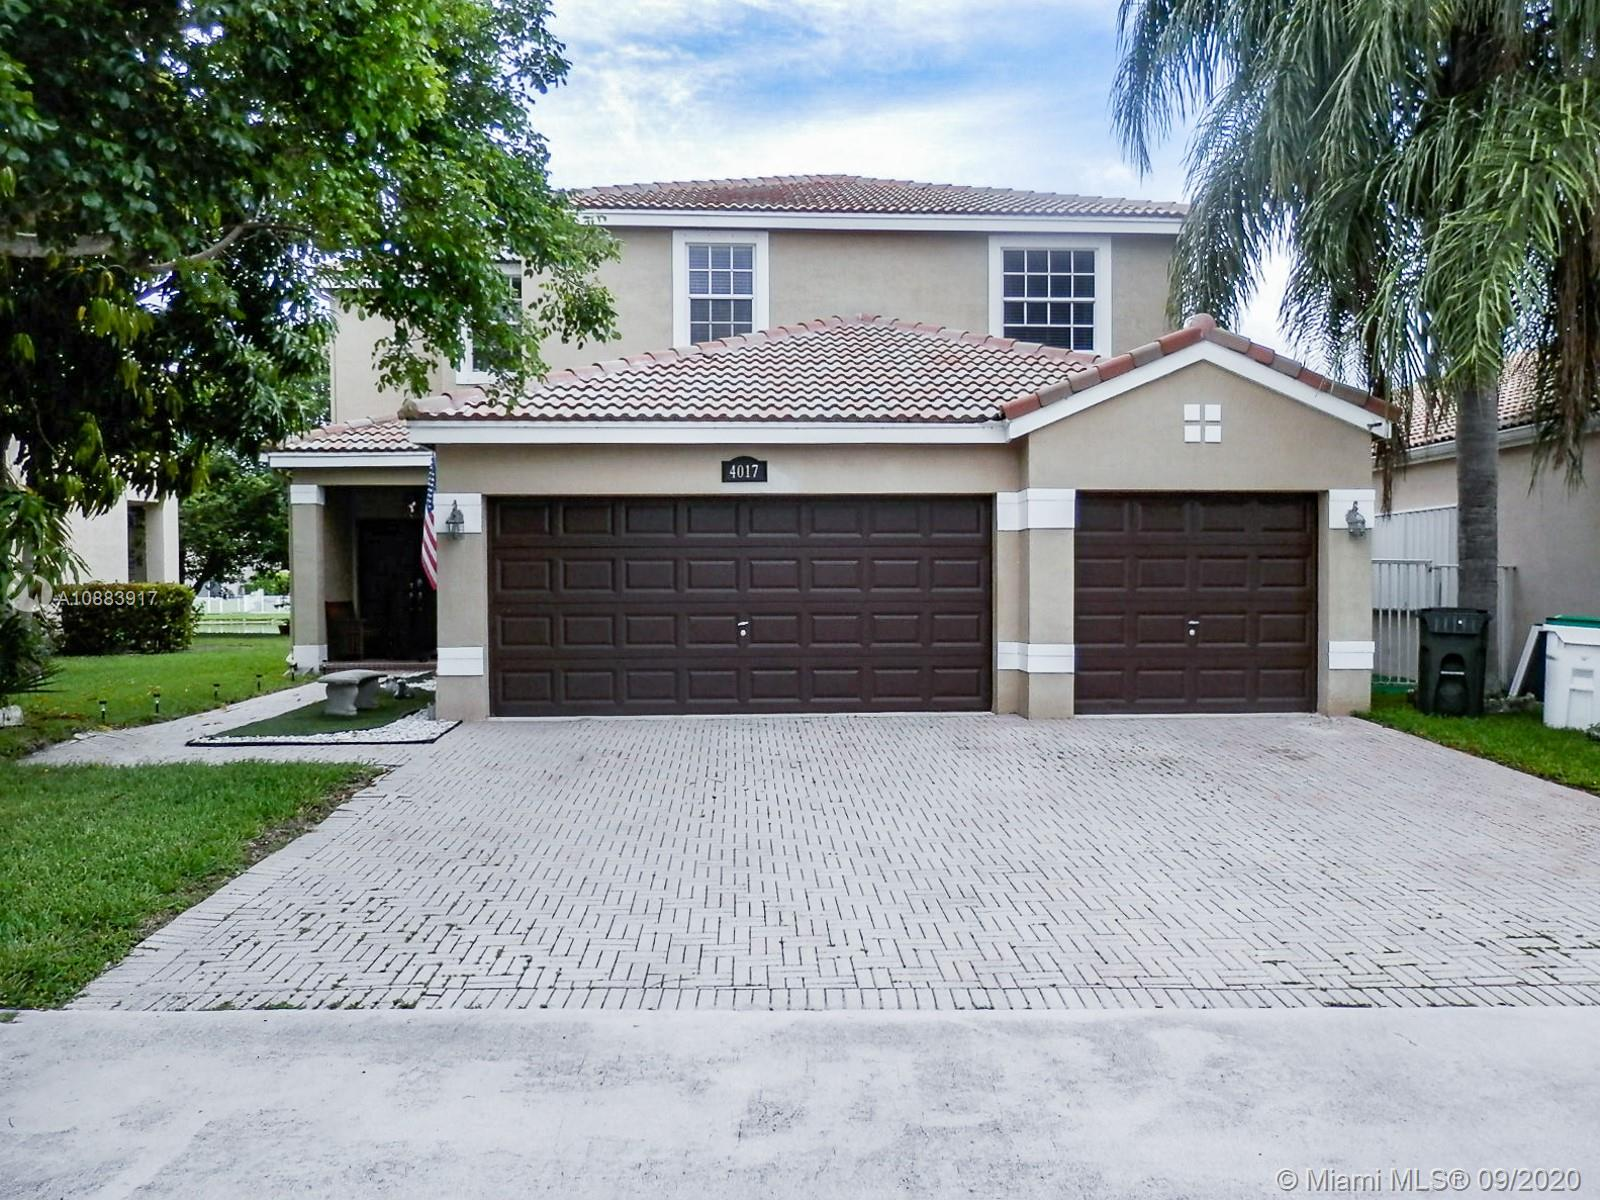 Beautifully detailed home in highly sought after private gated community of Coco Bay- Coconut Creek. Easy access, great amenities & LOW HOA fees! Top Rated School District! A must see & must have - 5 bd\3 ba\3 car garage home with pool/spa & stunning Lake Views! This home is spacious, 2-stories, with open floor plan, SS appliances, granite counter tops and custom cabinets in the kitchen, tile flooring downstairs & wood floors in the bedrooms! All 5 bedrooms are spacious & comfortable, 1 bedroom downstairs, Master upstairs.  Step outside to a fun patio with built in pool & spa, and the views of the lake!  Pool & Spa will receive new Diamond Brite treatment in next few days!!. Enjoy community amenities & The Promenade at Coconut Creek is 2 miles away!